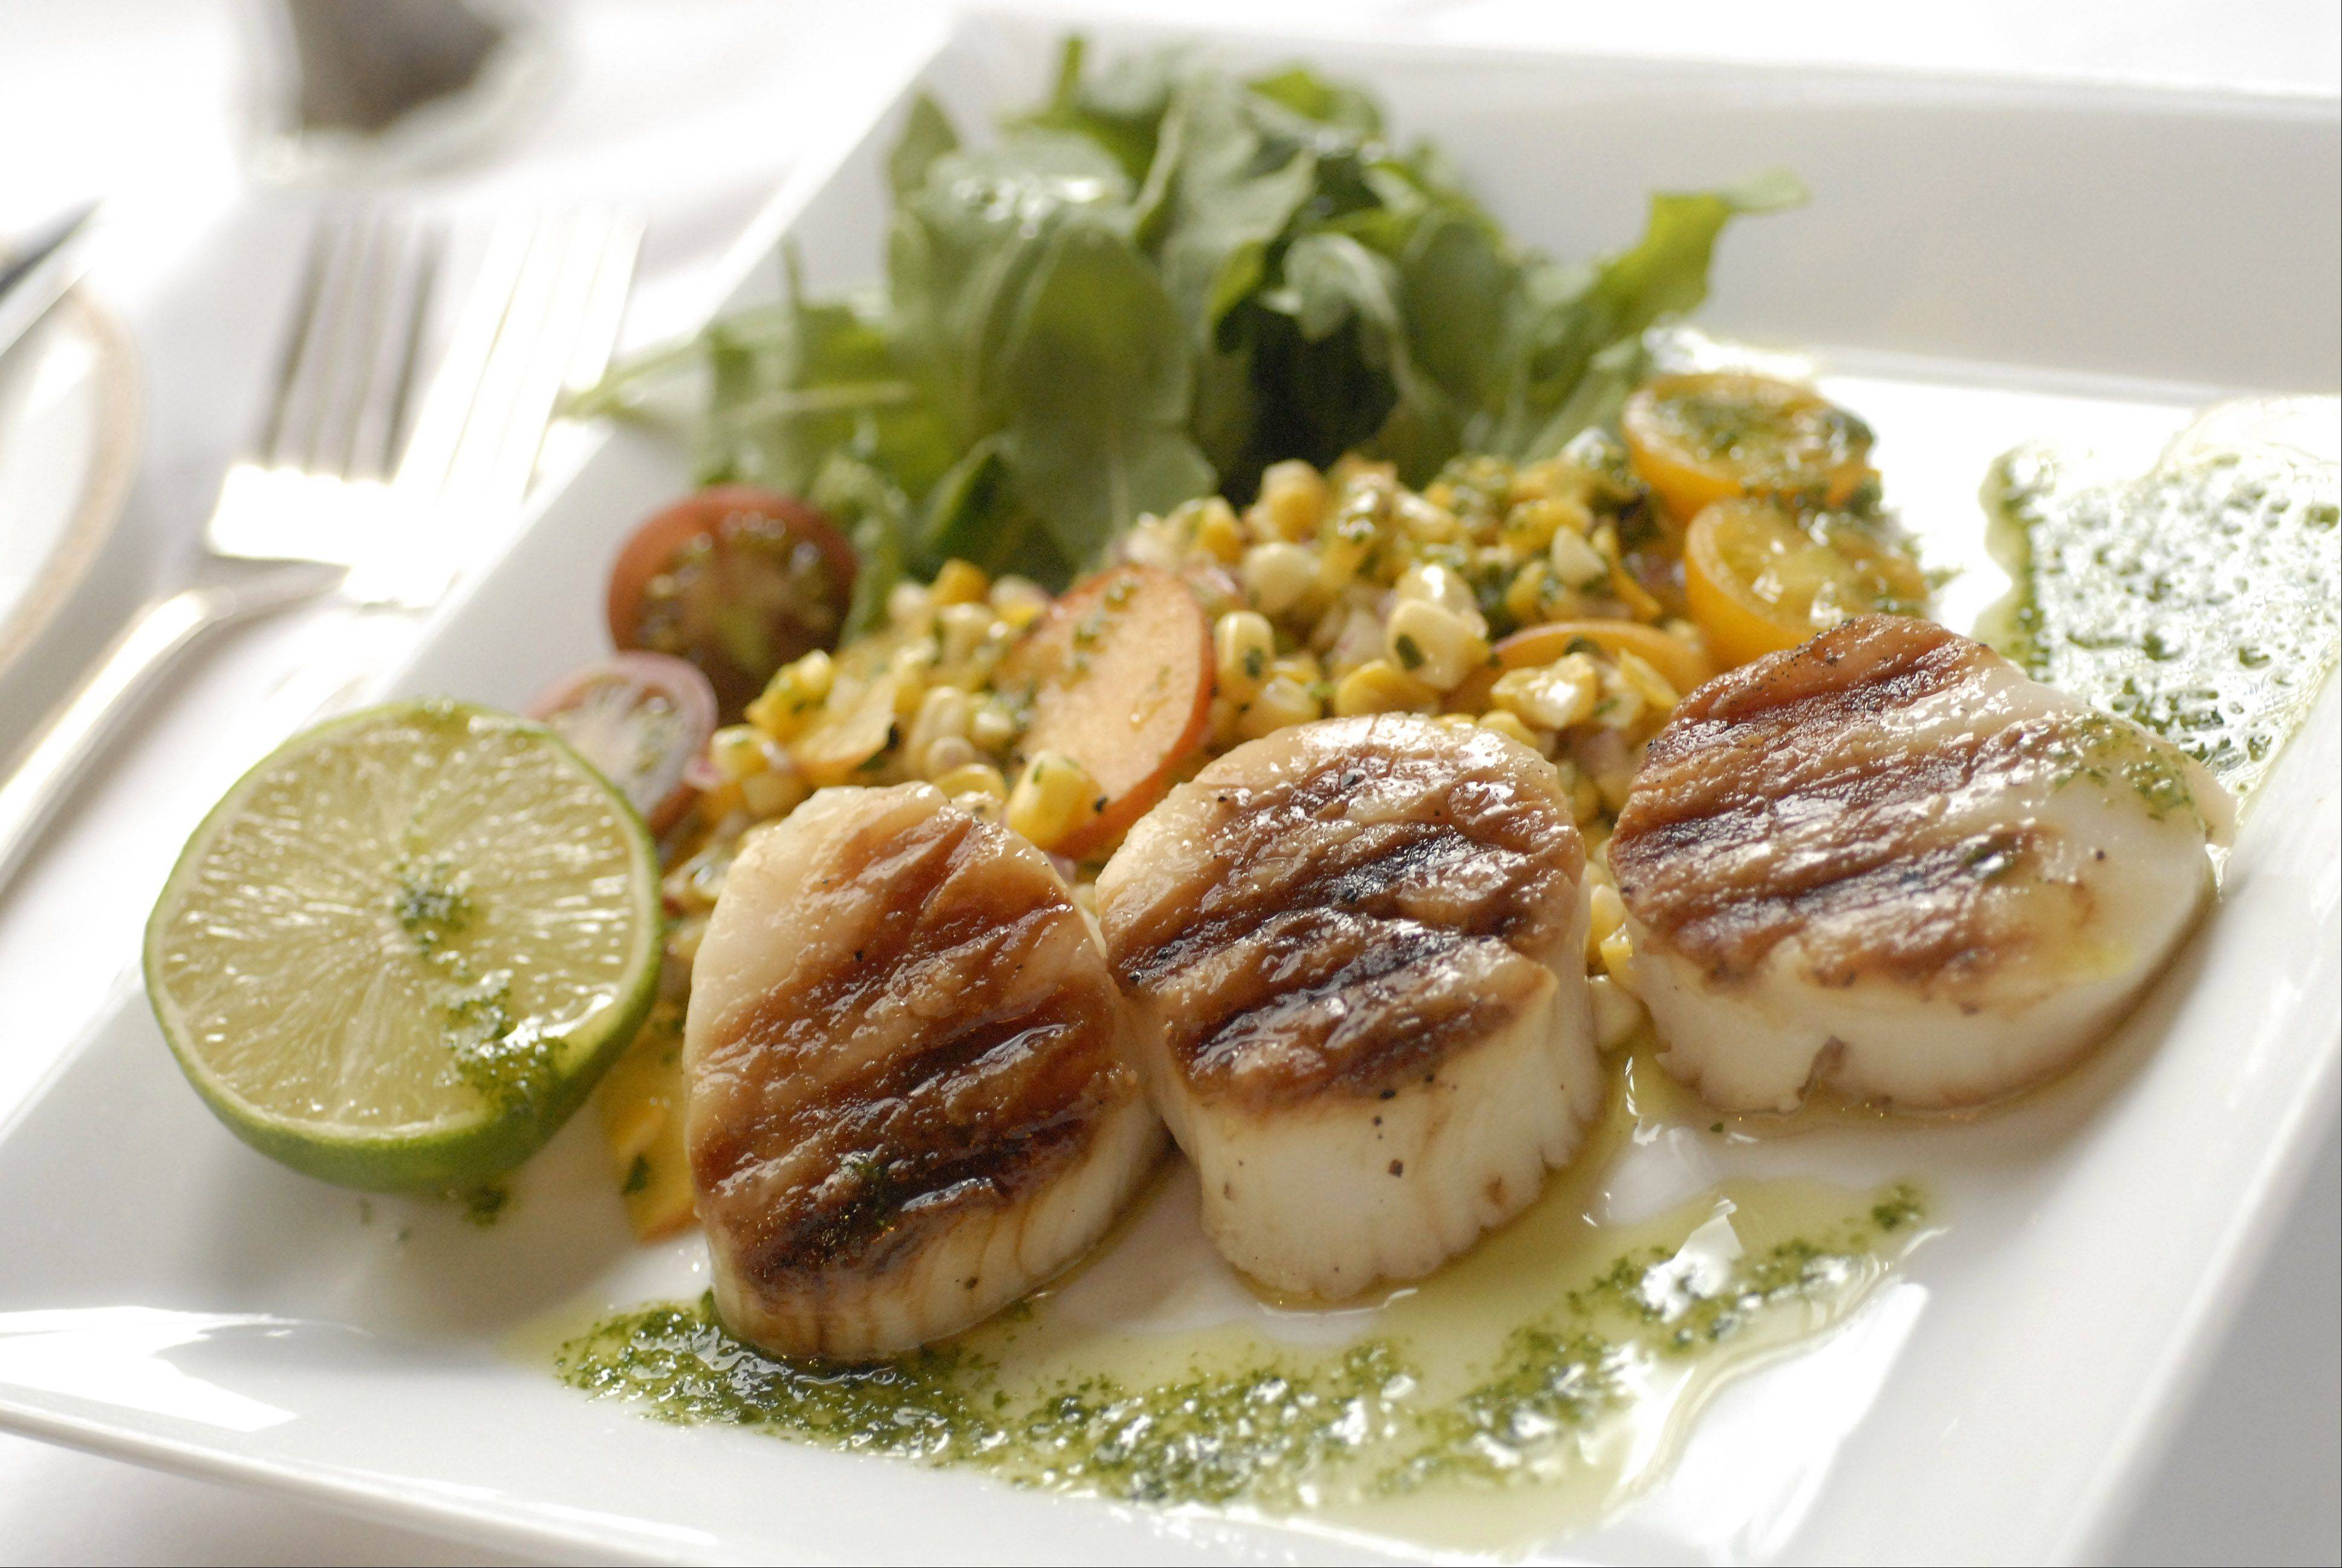 Chef Michael Garbin�s Sea Scallops with Roasted Corn and Peach Salad with Arugula and Cilantro Oil pleases diners at the Union League of Chicago. He said it takes about 45 minutes to prepare at home.